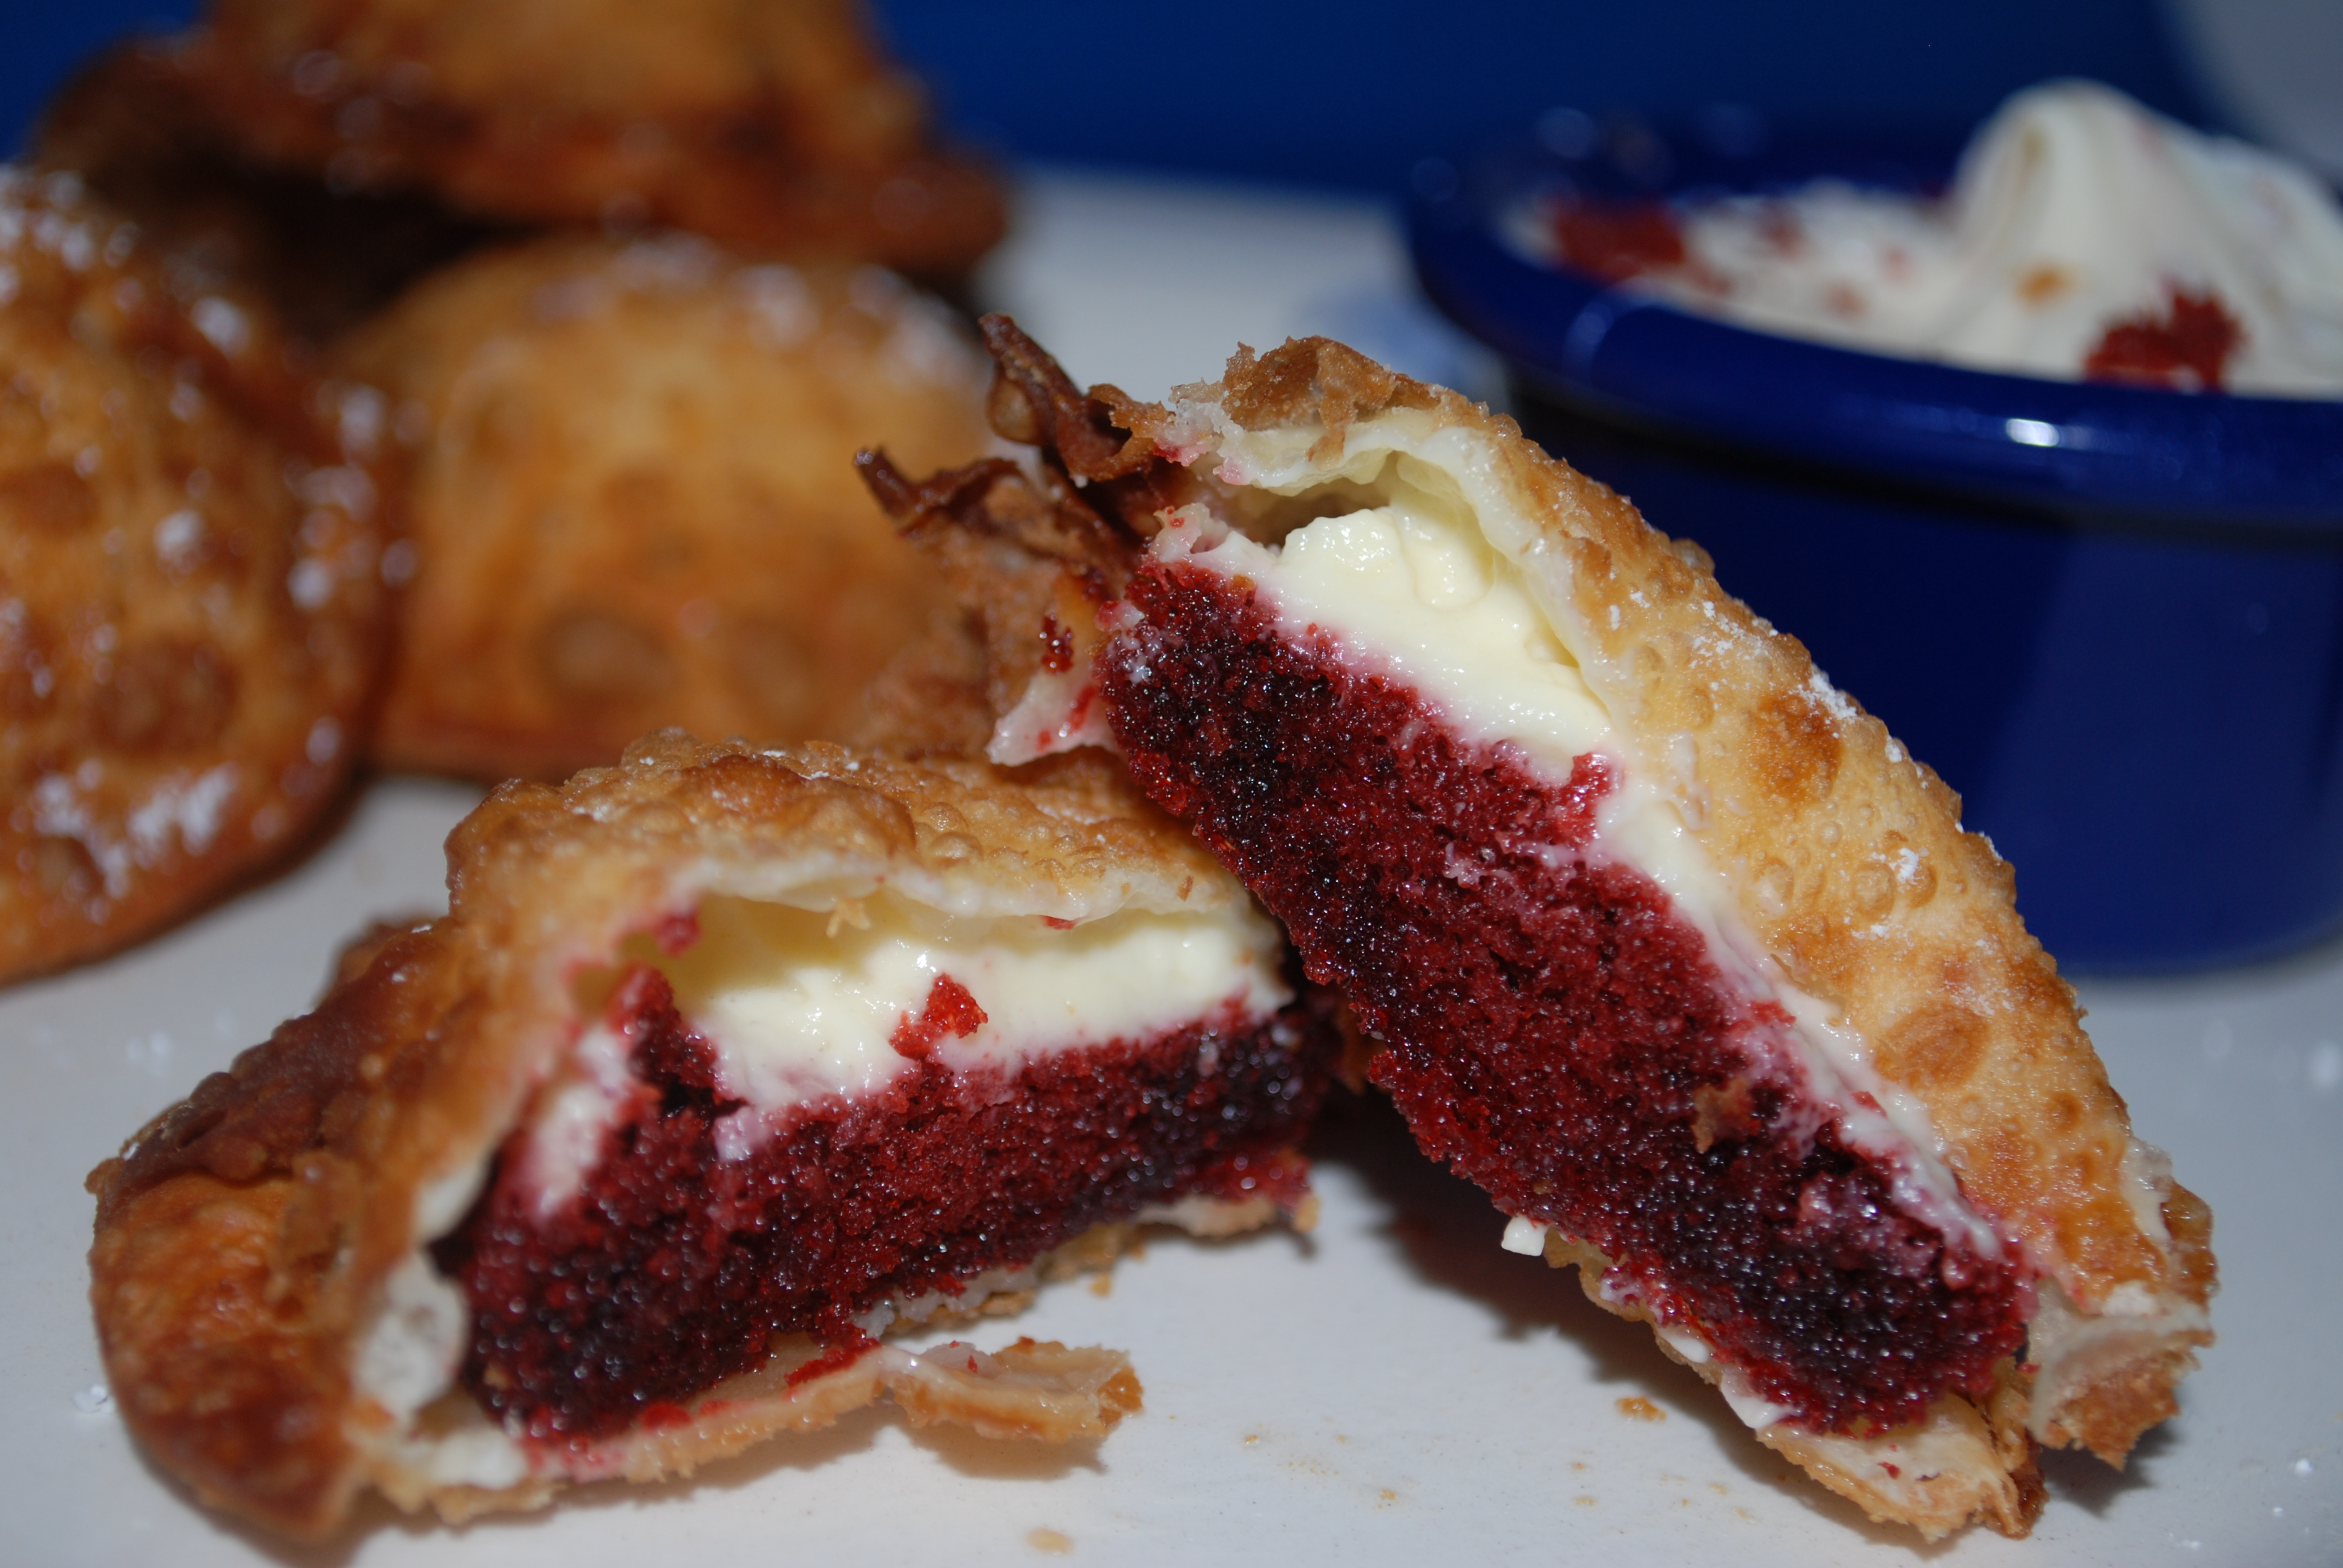 Red velvet cake, cheesecake filling in a wonton with cream cheese icing for dipping!